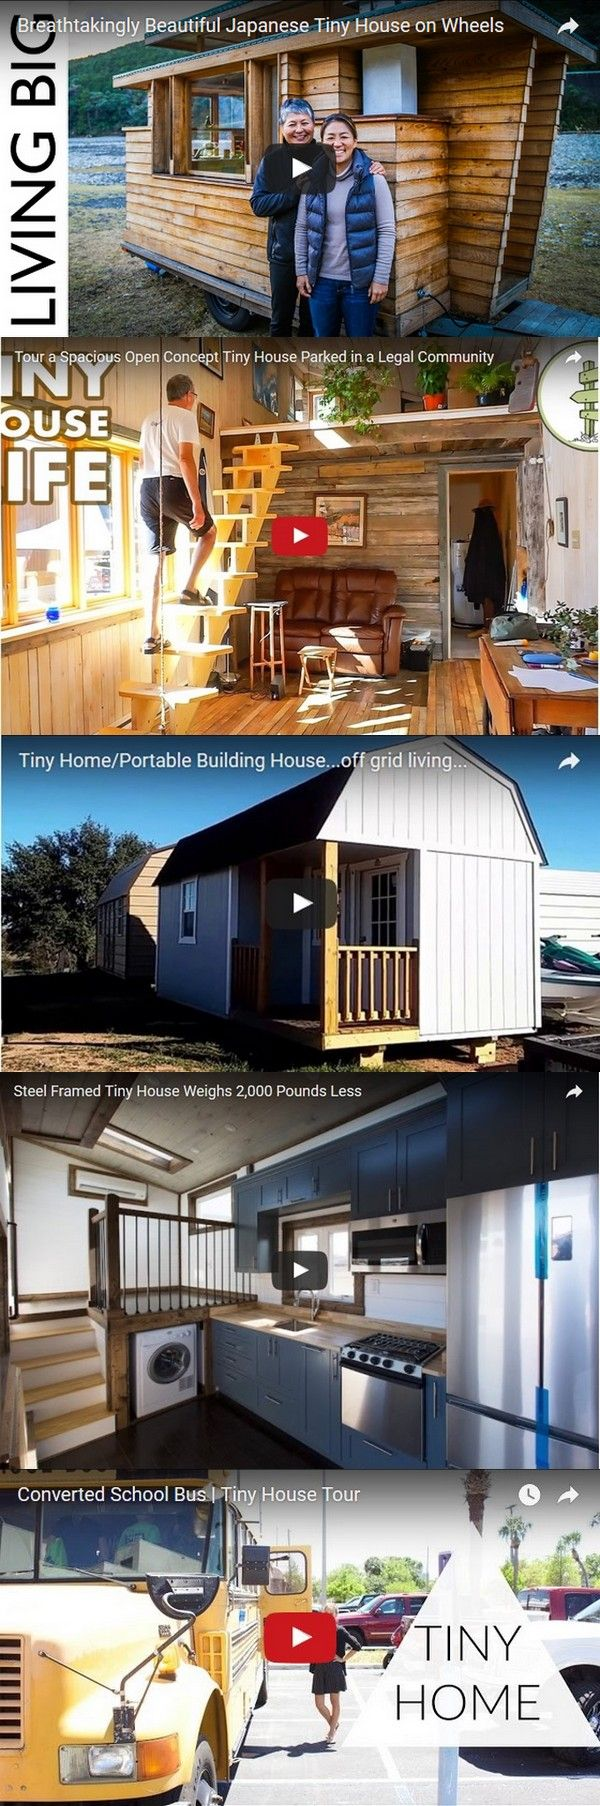 These 21 Tiny Houses would completely Thrill You